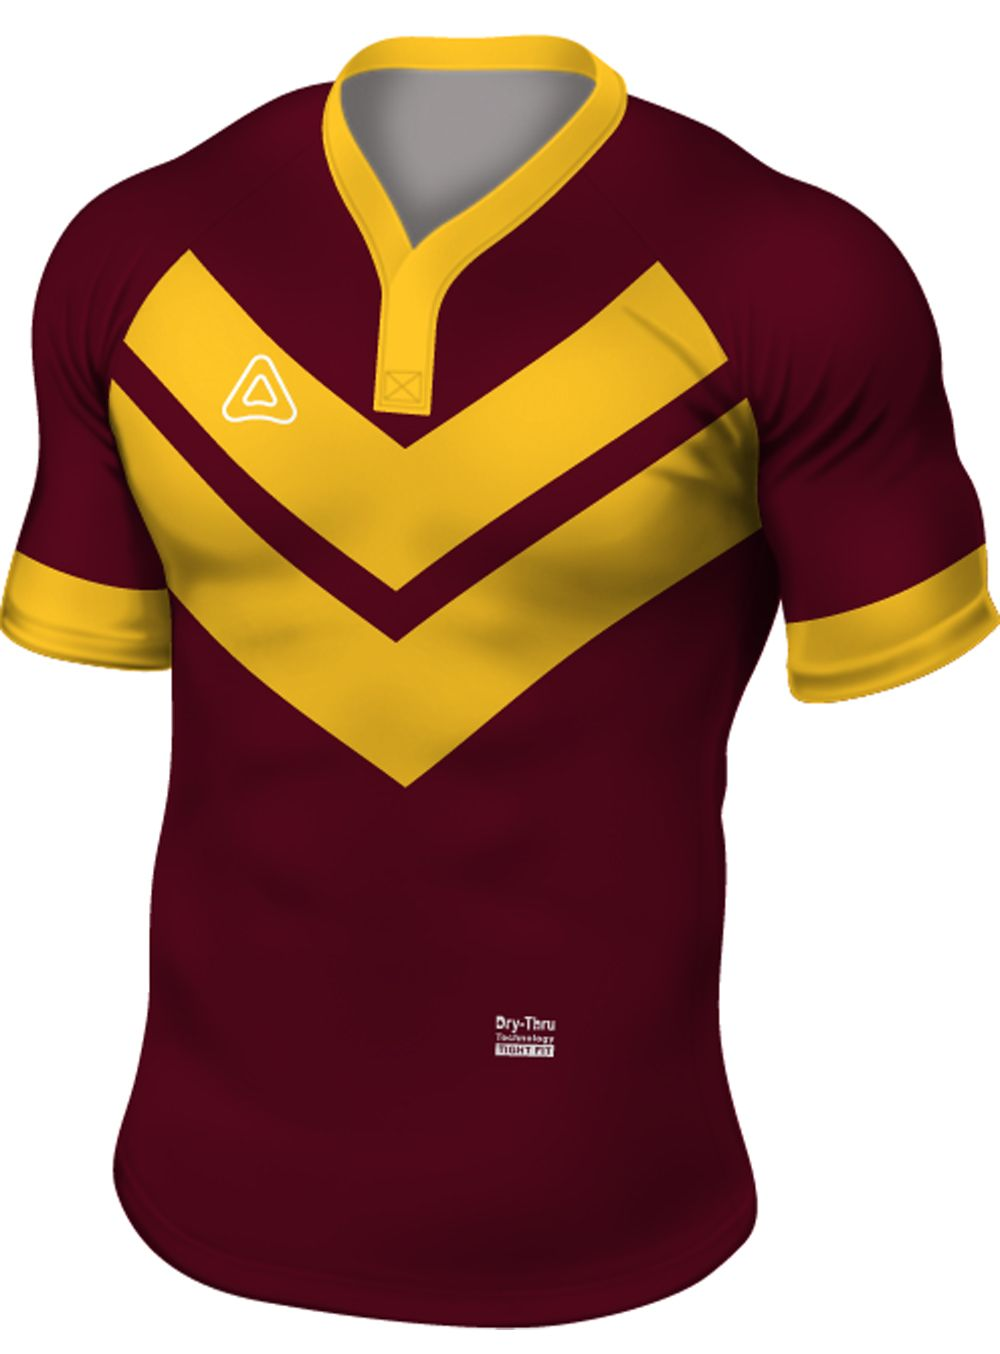 Rugby Shirt Suppliers Uk ce8e1ea1b